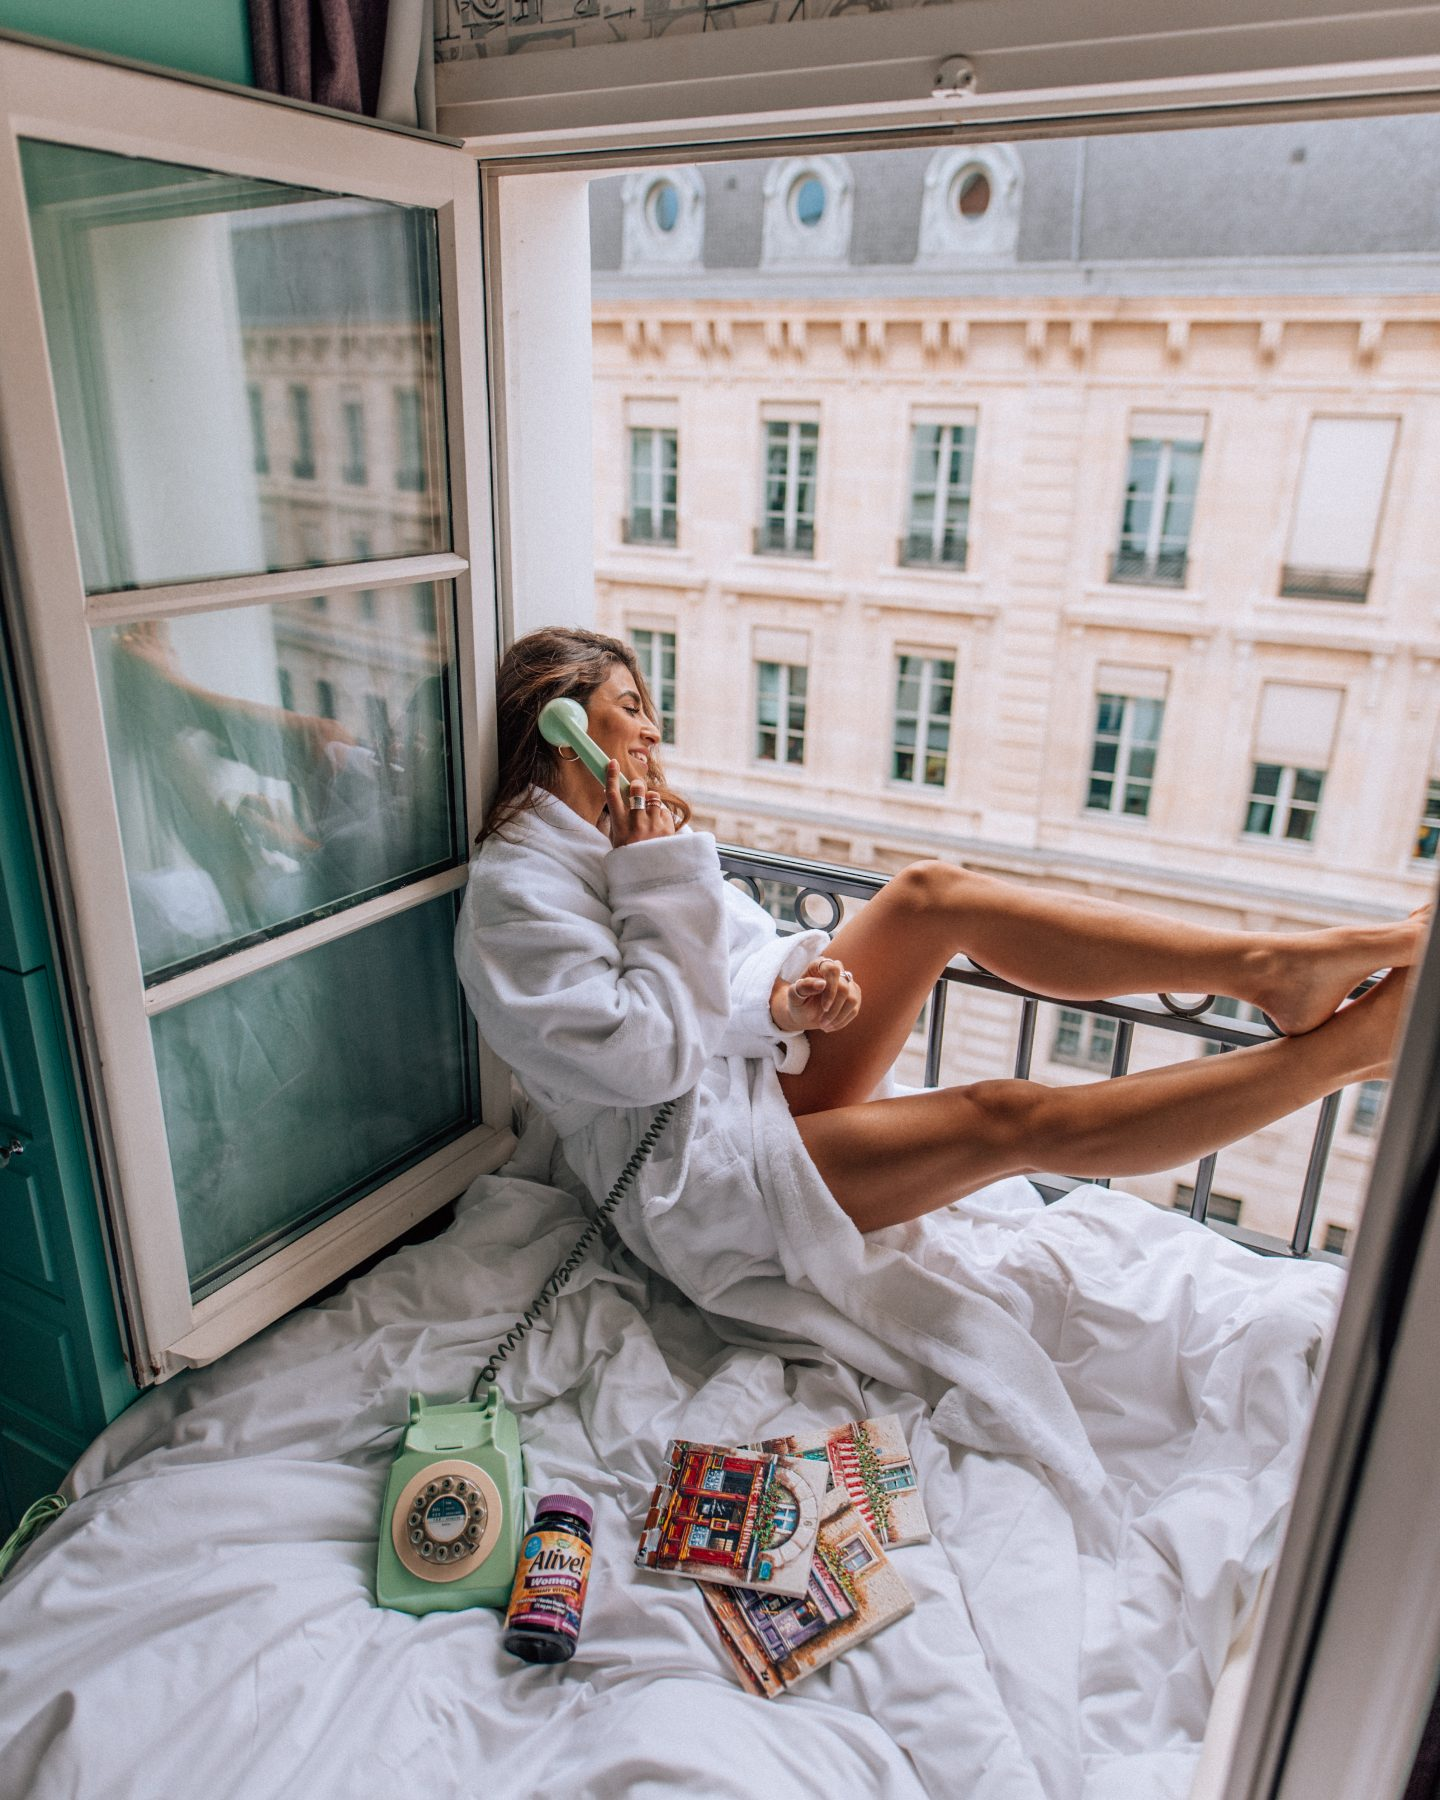 10 Girlboss Hacks for a More Productive Morning Routine